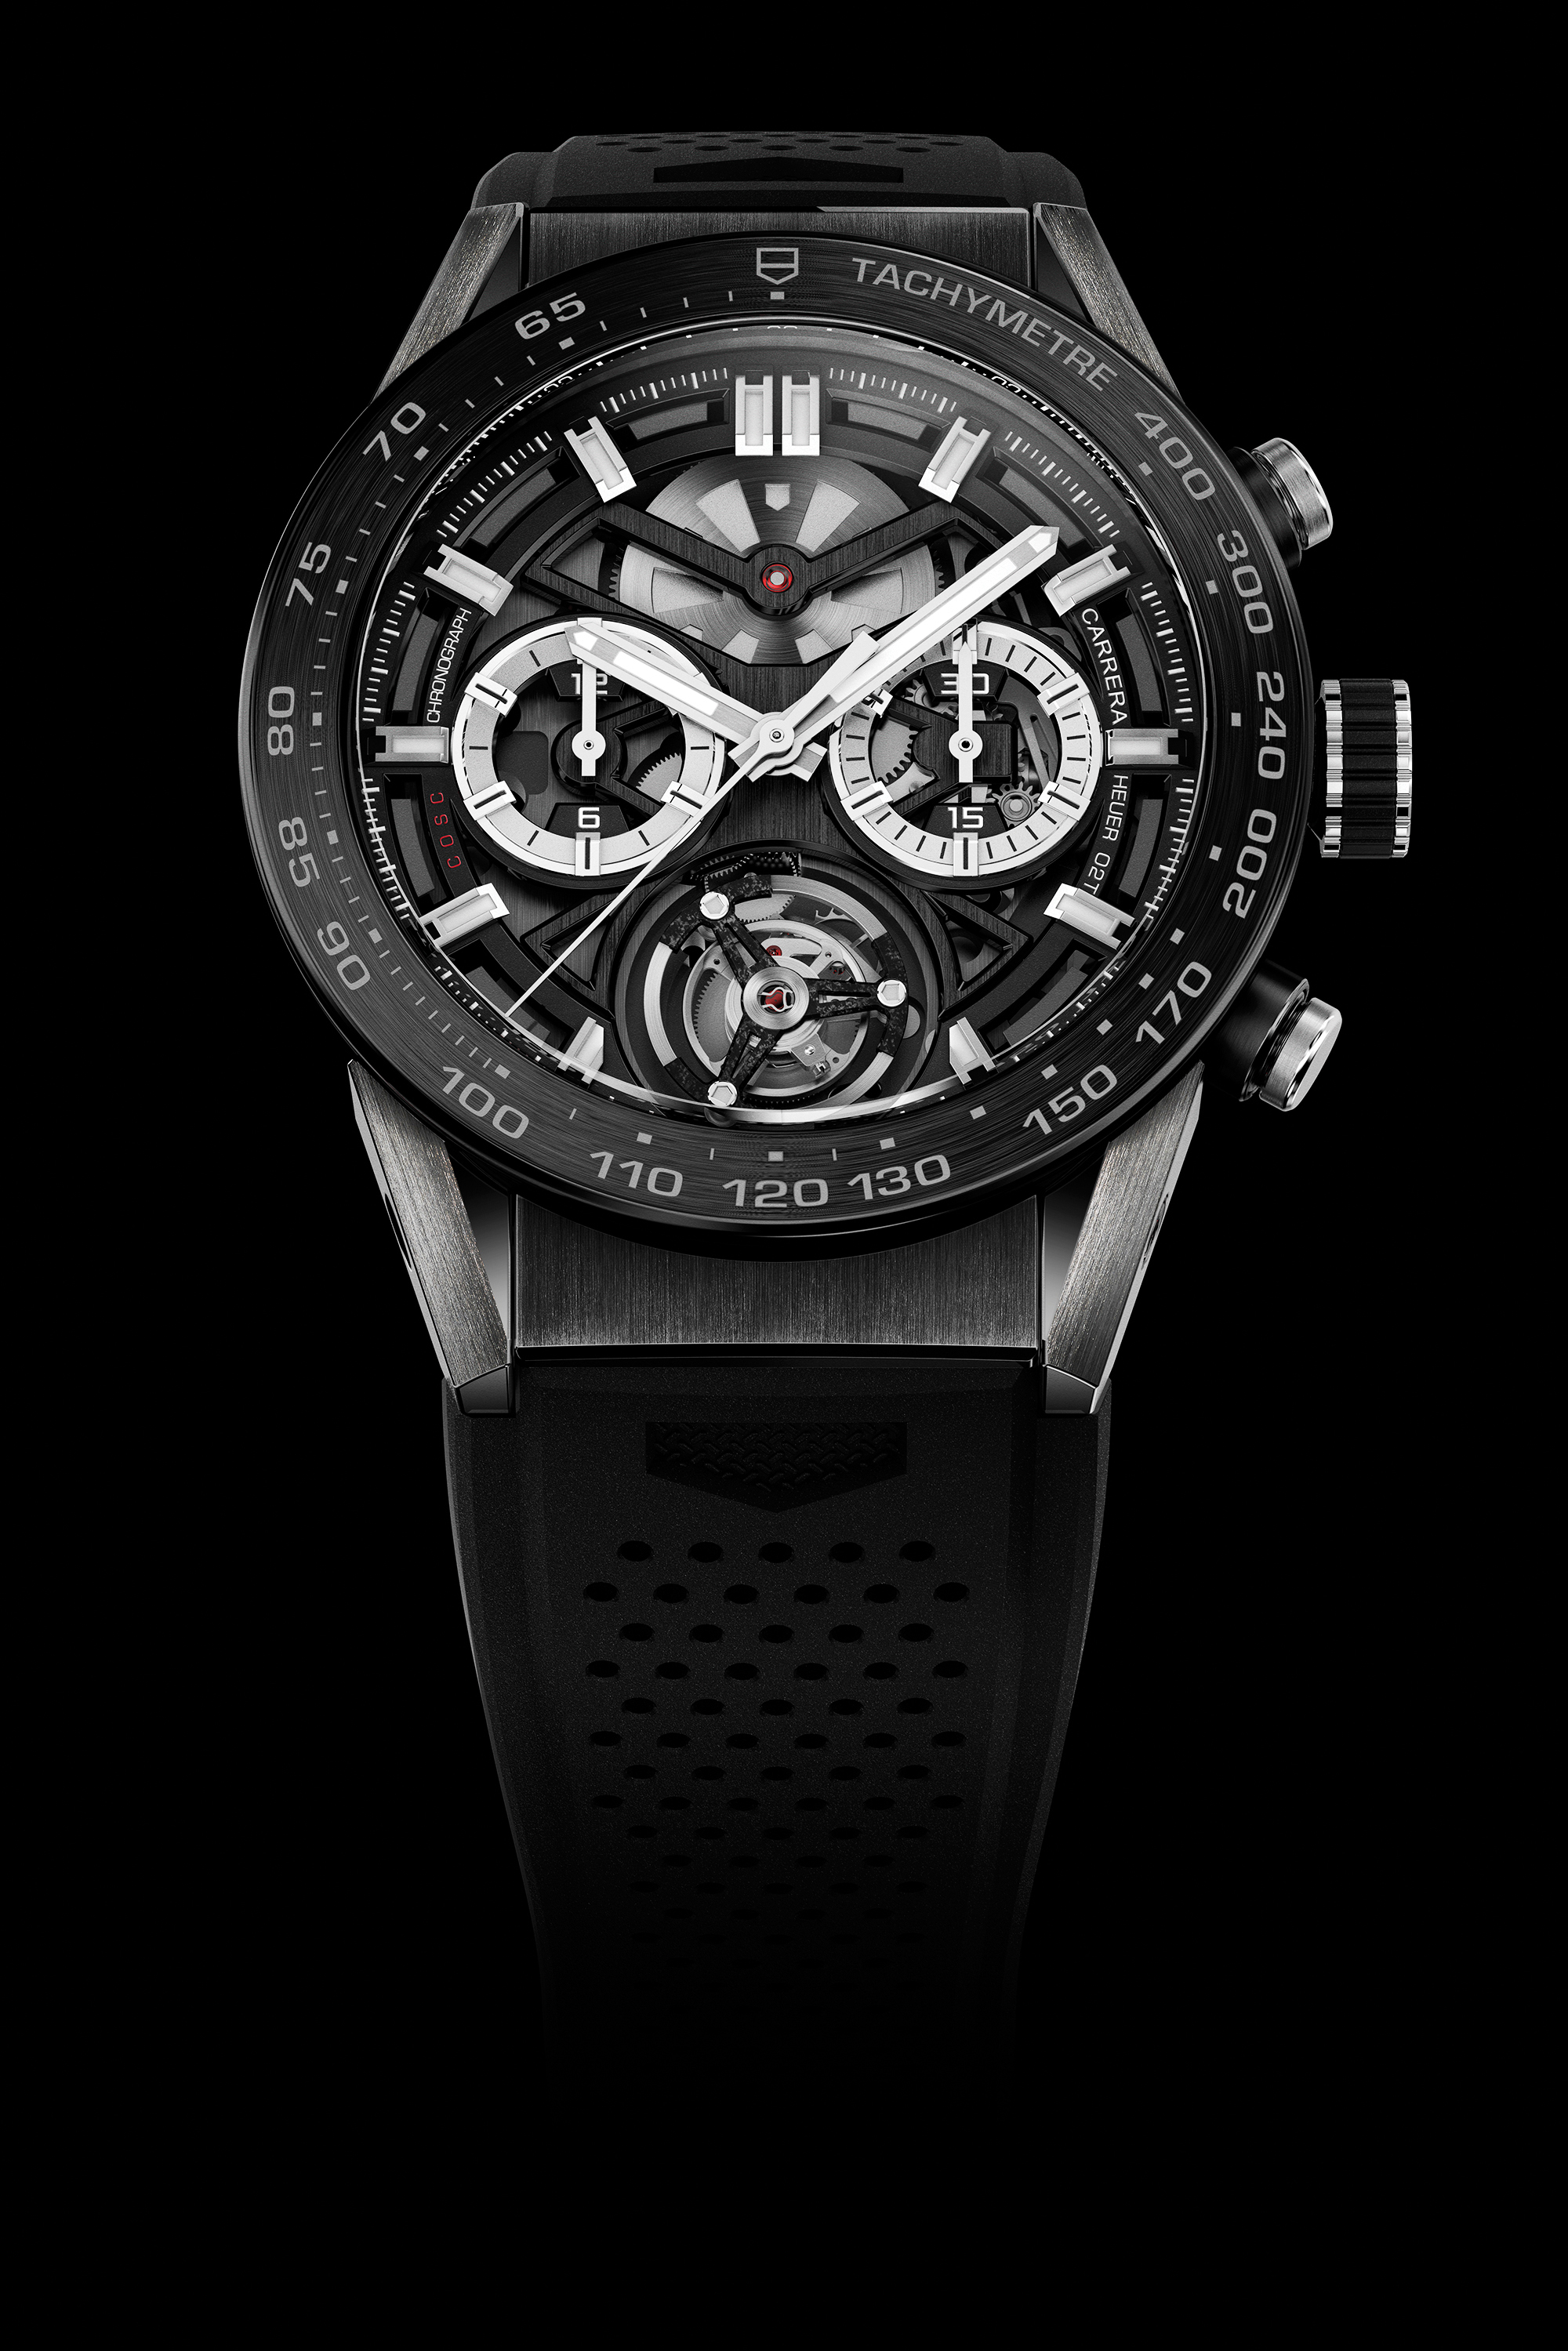 Tag Heuer's Connected smartwatch.